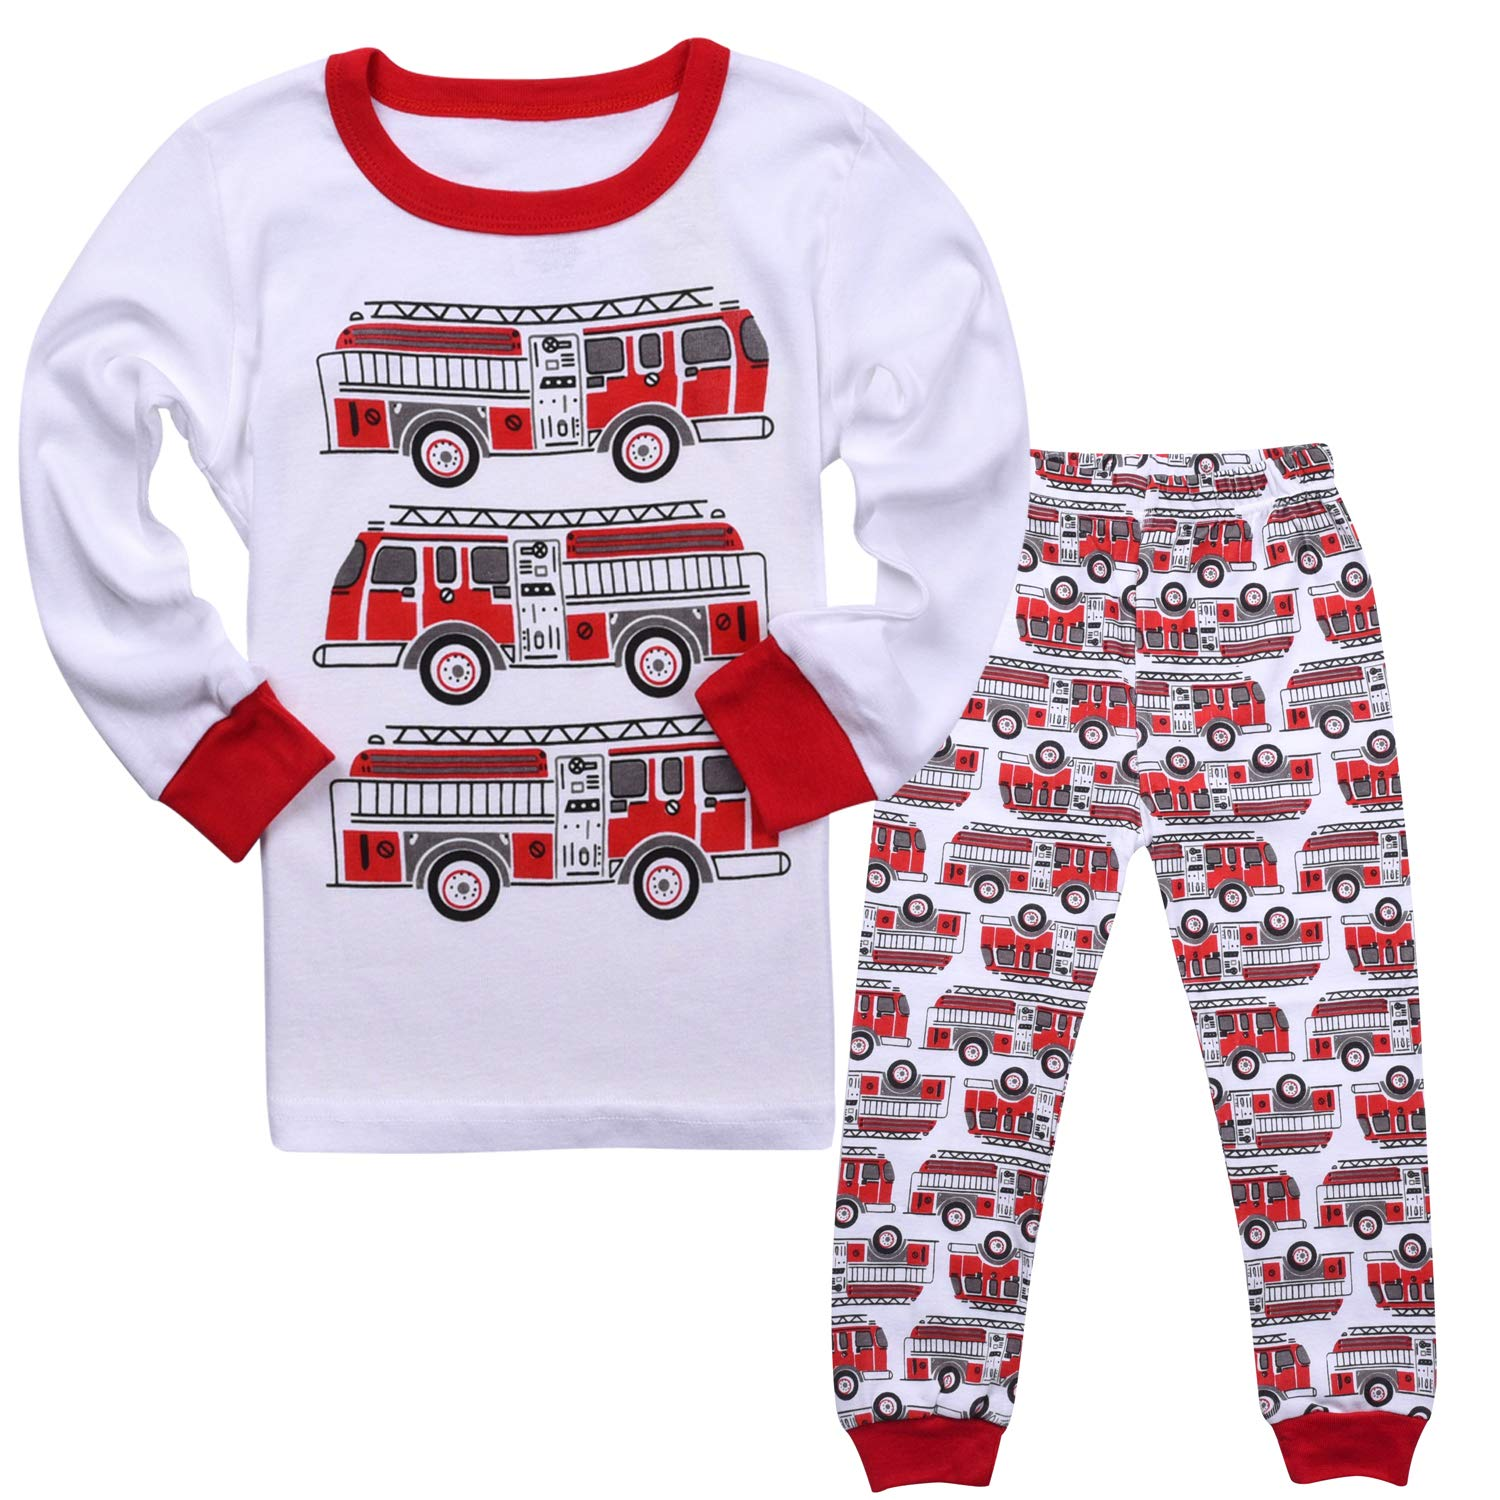 Tkala Fashion Boys Pajamas Children Clothes Set 100% Cotton Little Kids Pjs Sleepwear (3T, white2)